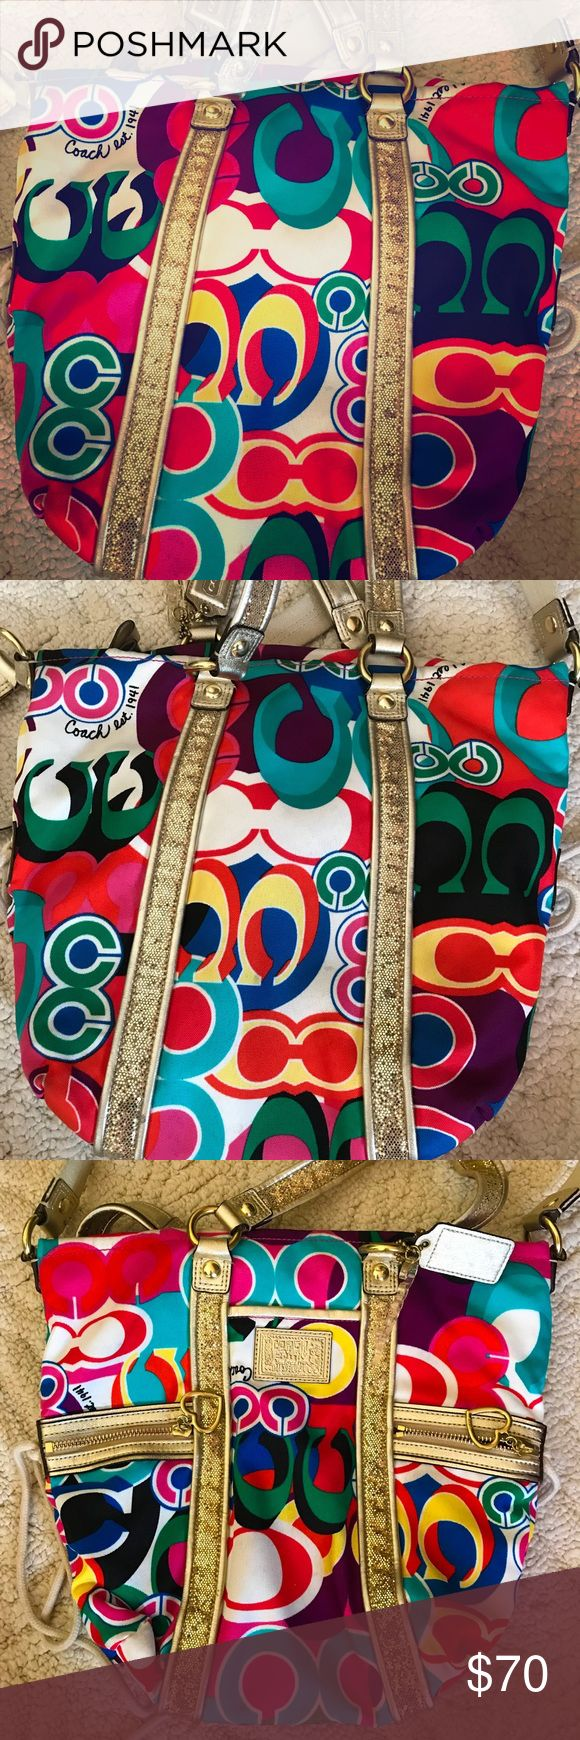 Coach Purse Cute, fun & flirty! This is the Coach bag for the woman who has every other color! Coach Bags Hobos